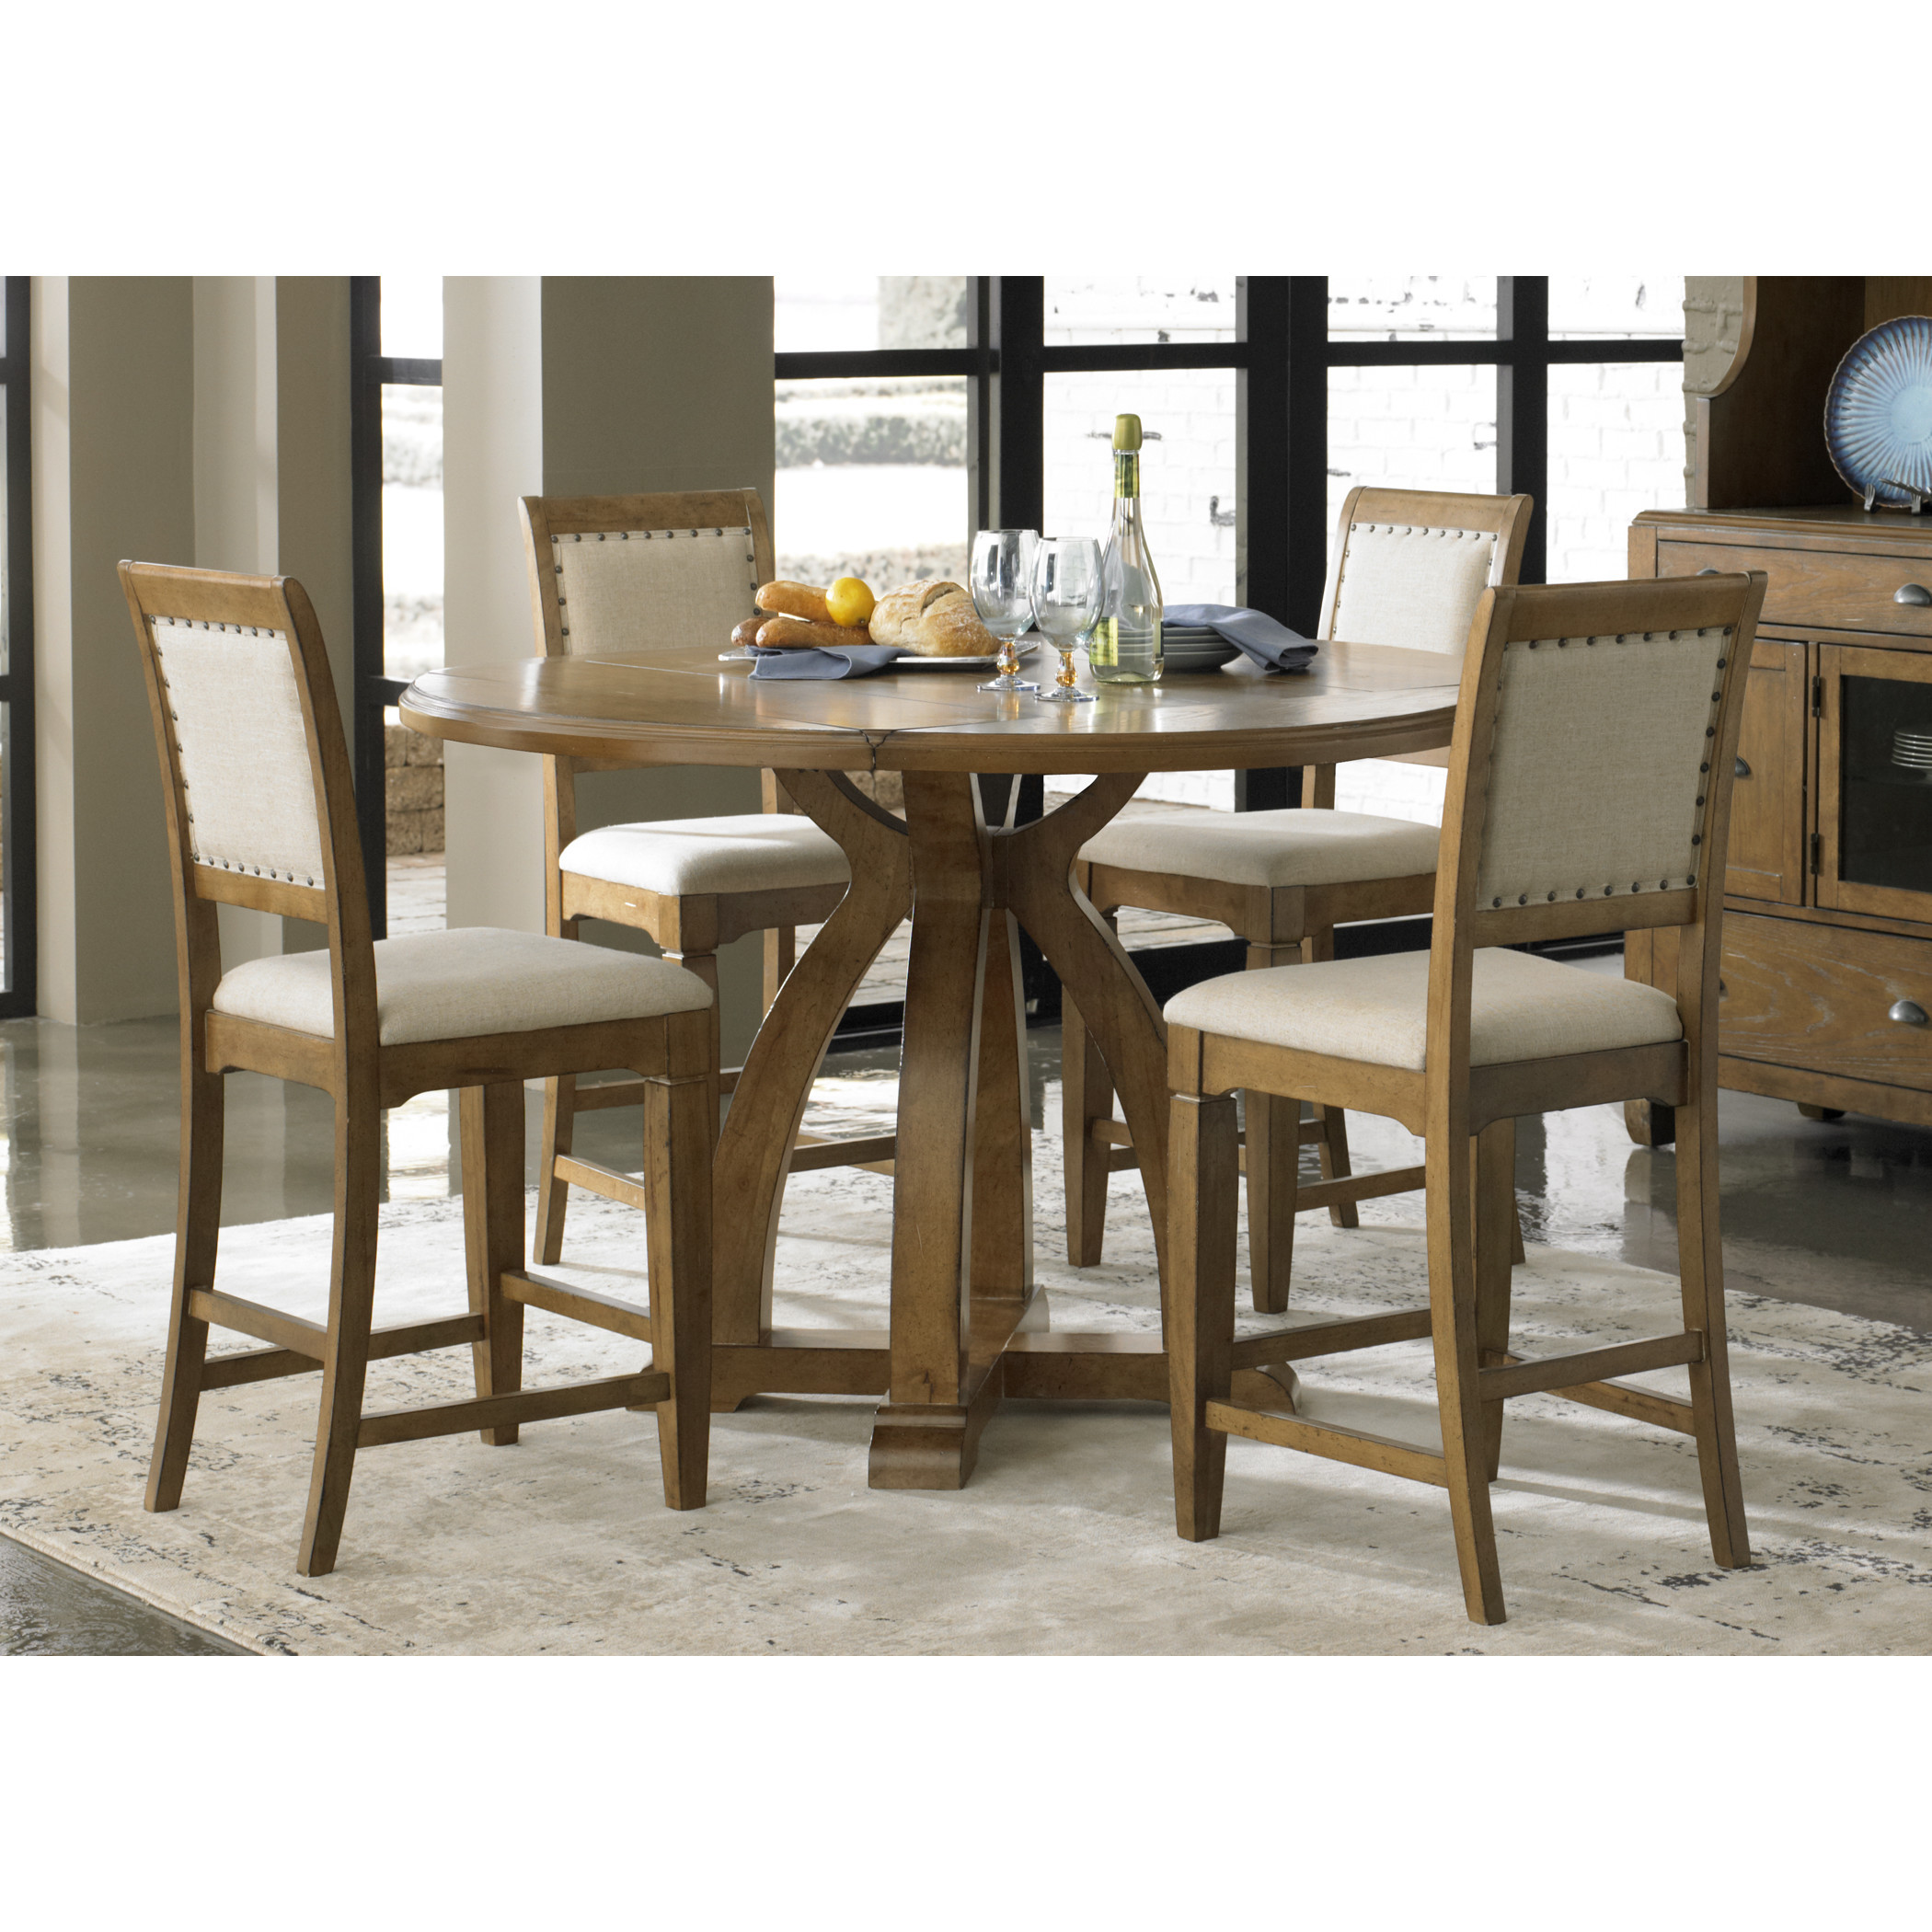 Best ideas about Country Dining Table . Save or Pin Liberty Furniture Town and Country Counter Height Dining Now.